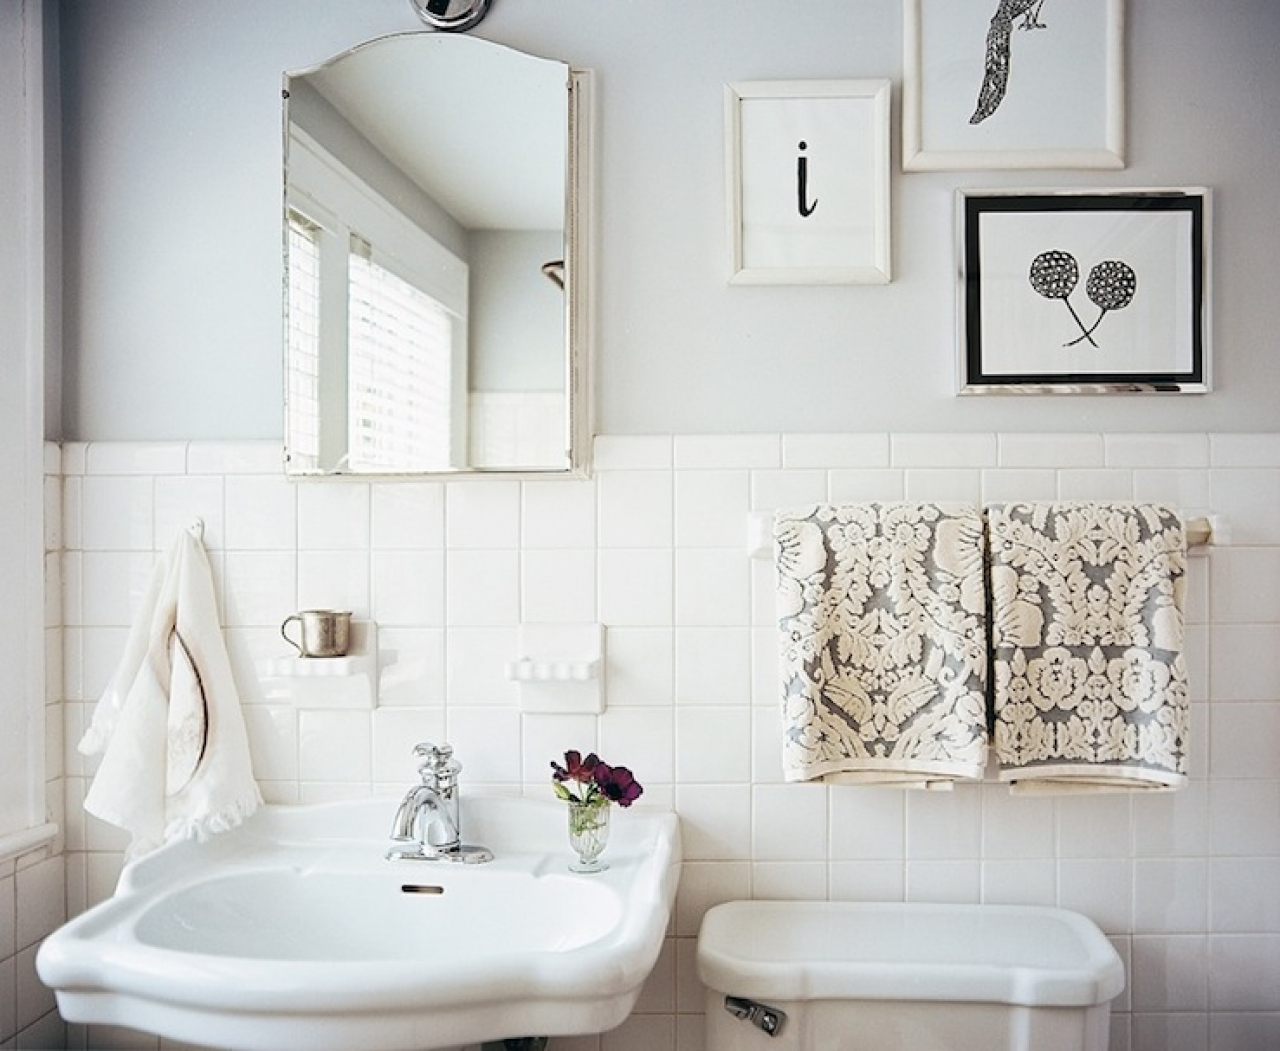 33 amazing pictures and ideas of old fashioned bathroom for White and gray bathroom ideas